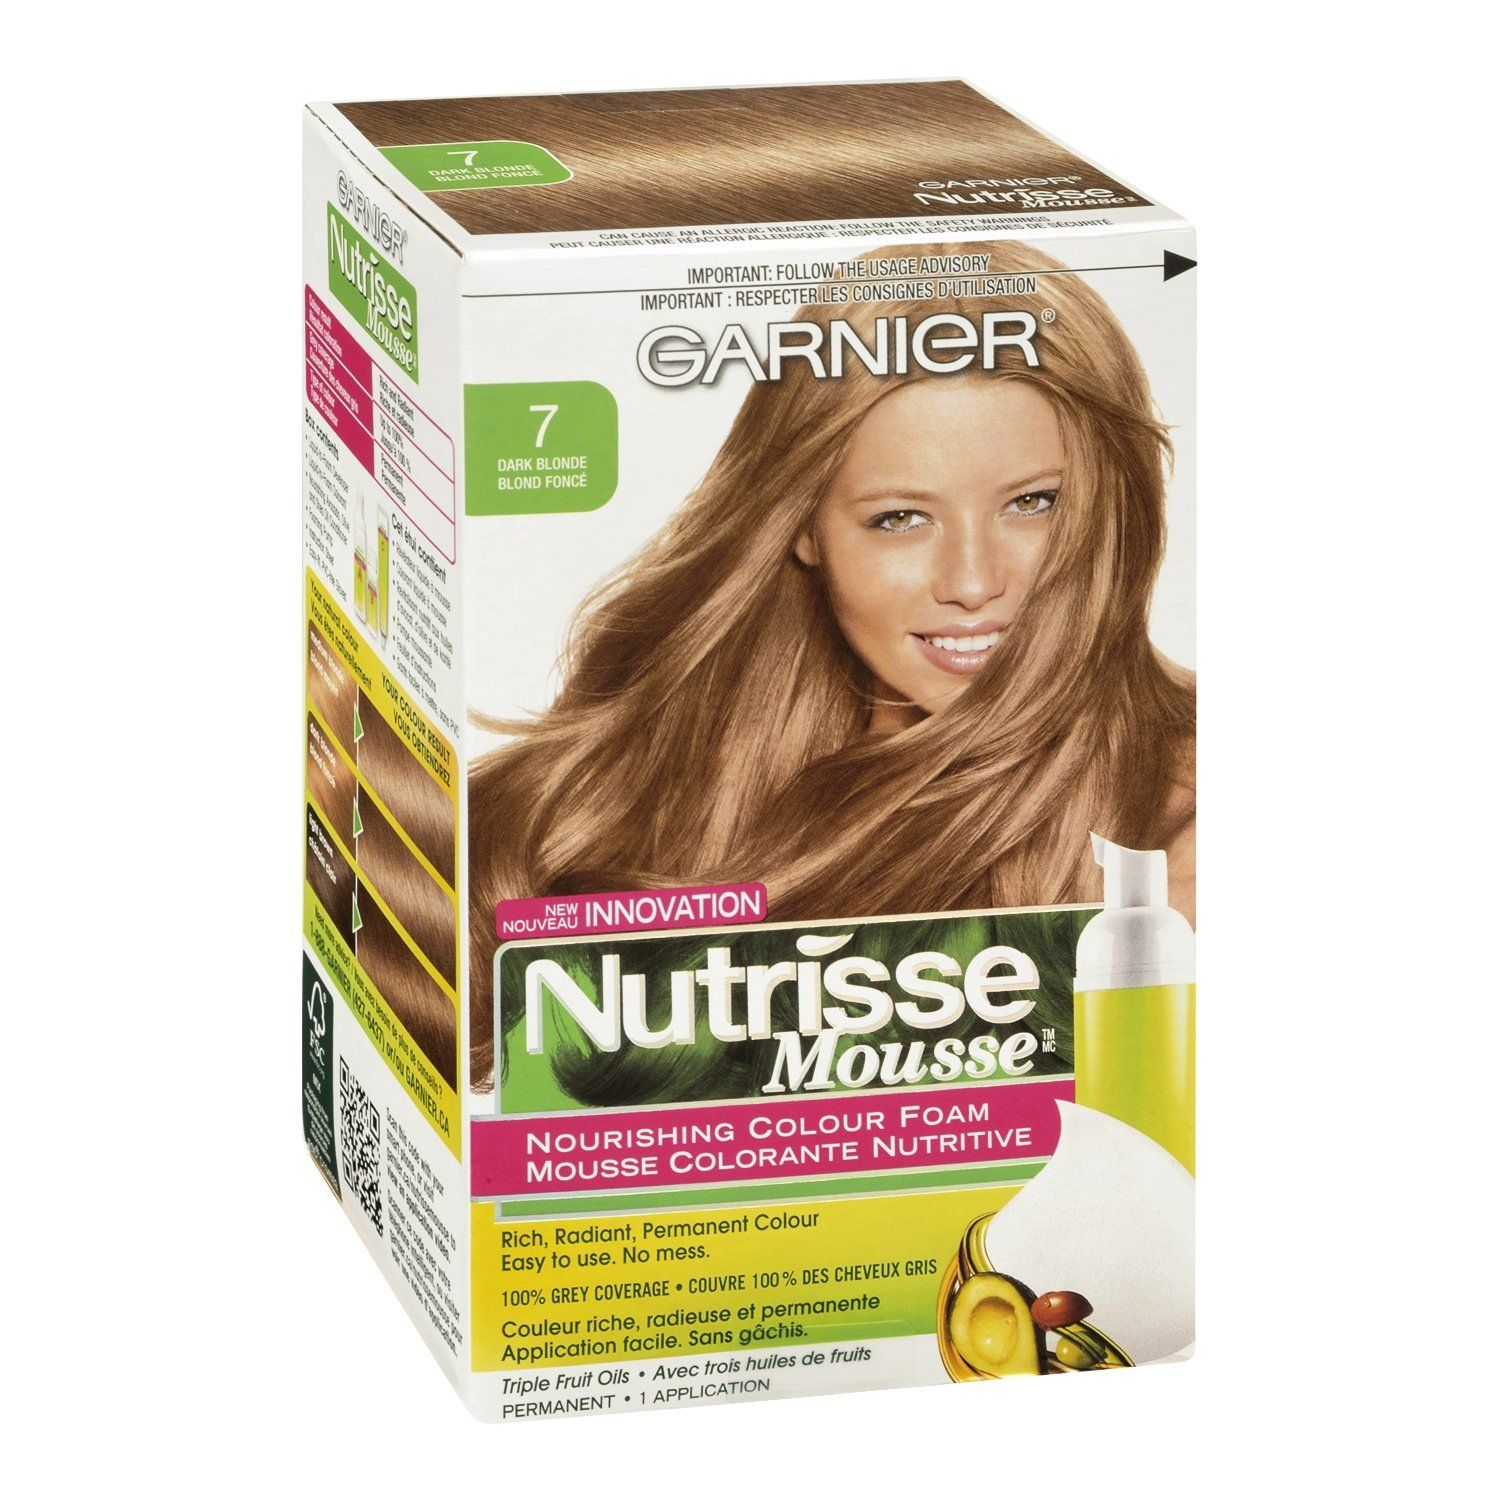 Dark Blonde Hair Dye Garnier Best Hair Color To Cover Gray At